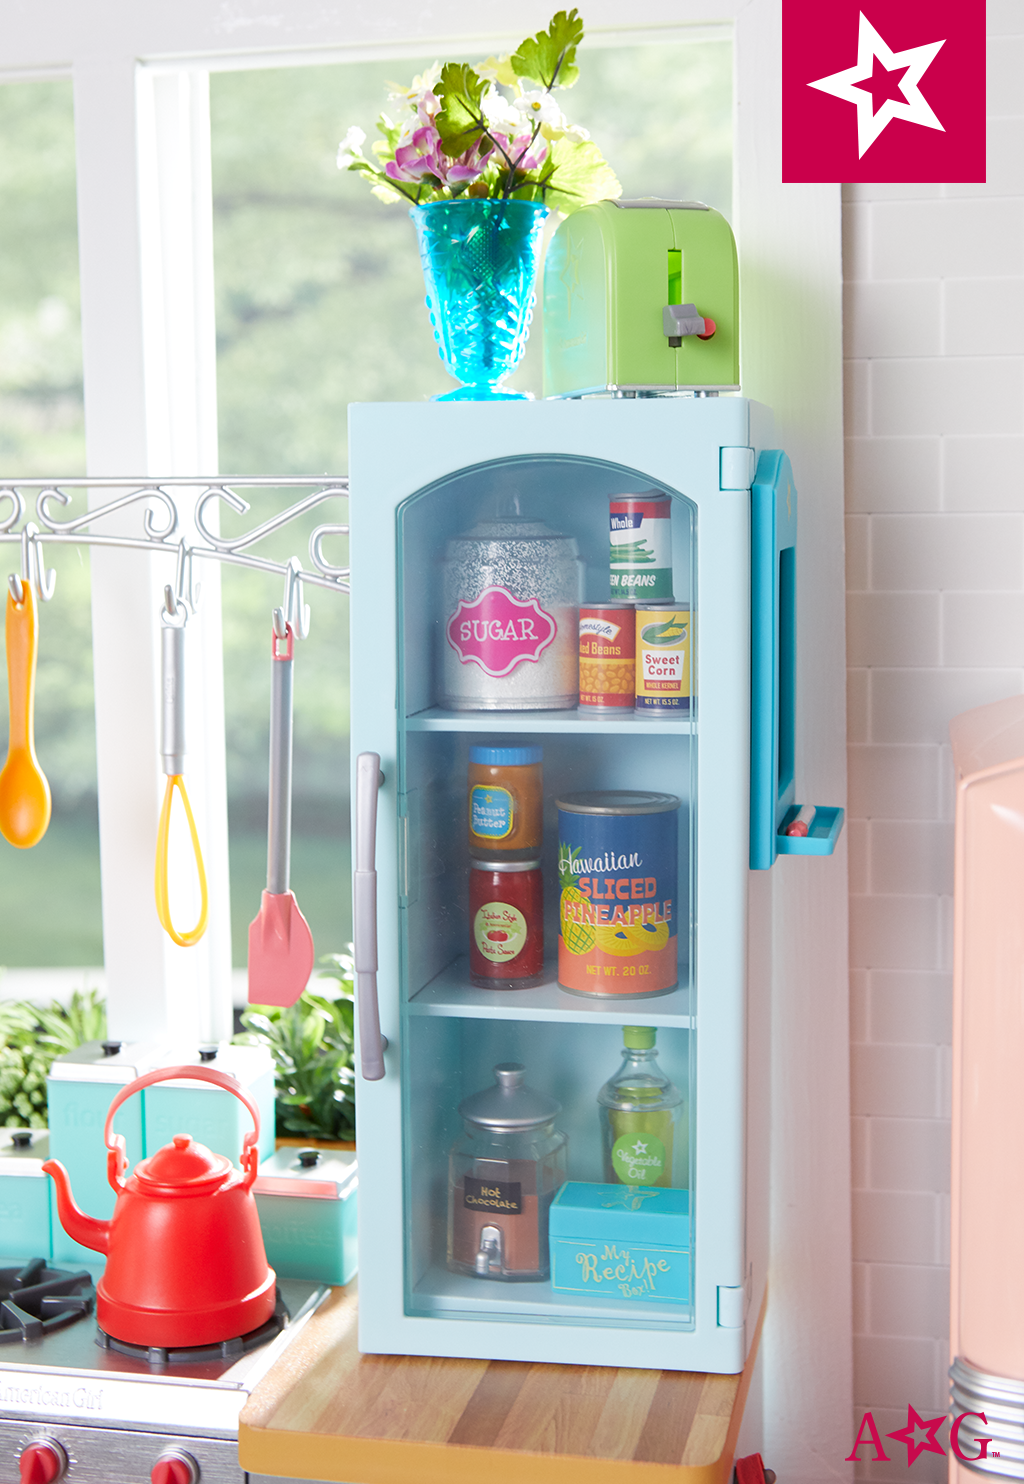 A place for everything, plus fresh flowers to brighten any kitchen ...